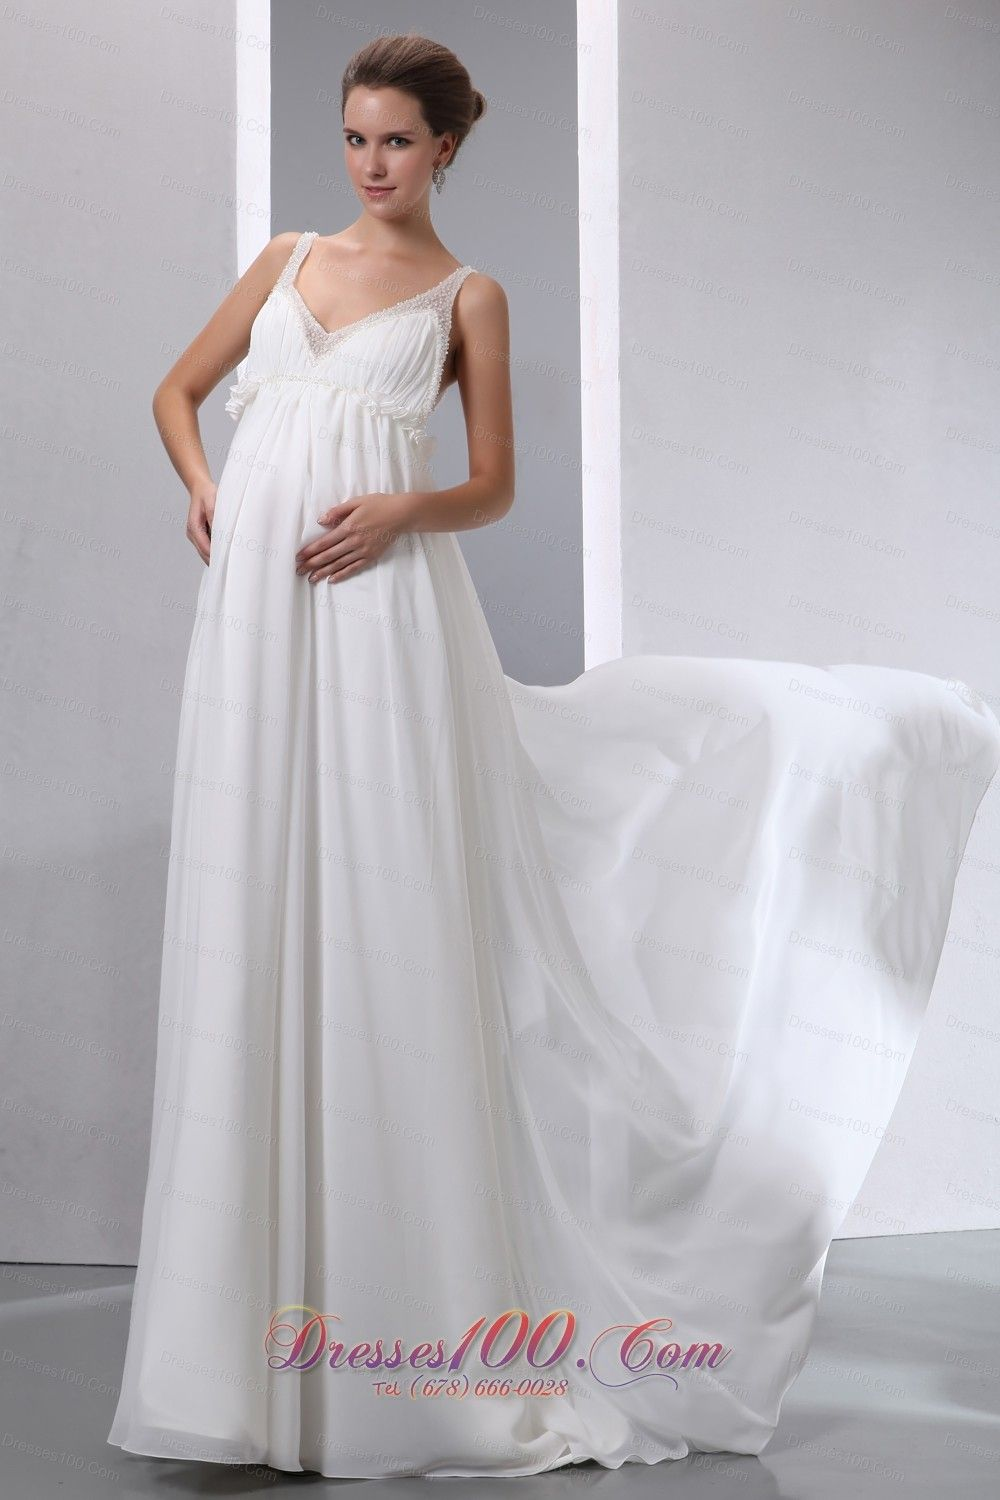 Where to buy wedding dress in san ram n de la nueva or n wedding dress in campana buenos aires wedding gown bridal gown bridesmaid dresses flower girl dresses discount dresses on sale cocktail dresses beautiful ombrellifo Choice Image